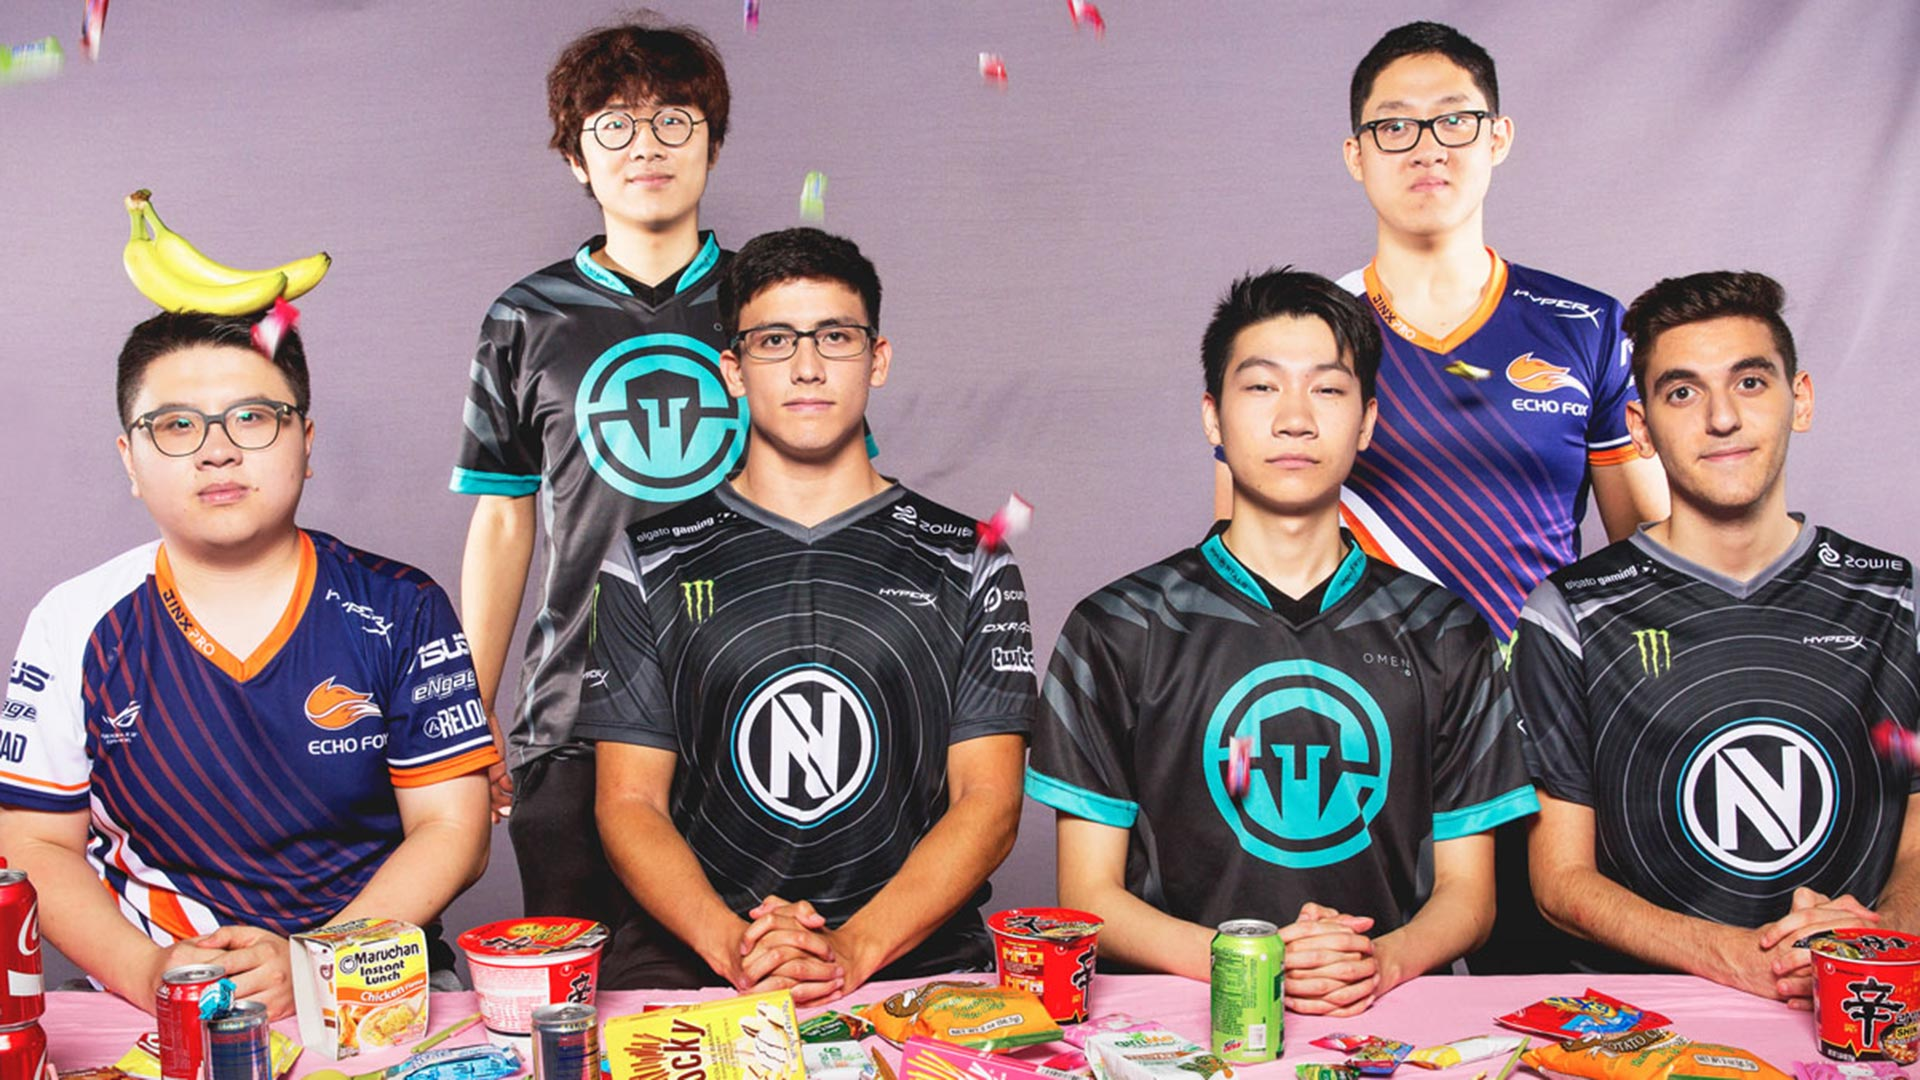 """f1bca34038a4f In 2012, former TSM top laner Marcus """"Dyrus"""" Hill triggered the fire alarm  in the TSM house because he entered an extra zero onto the microwave —  turning ..."""